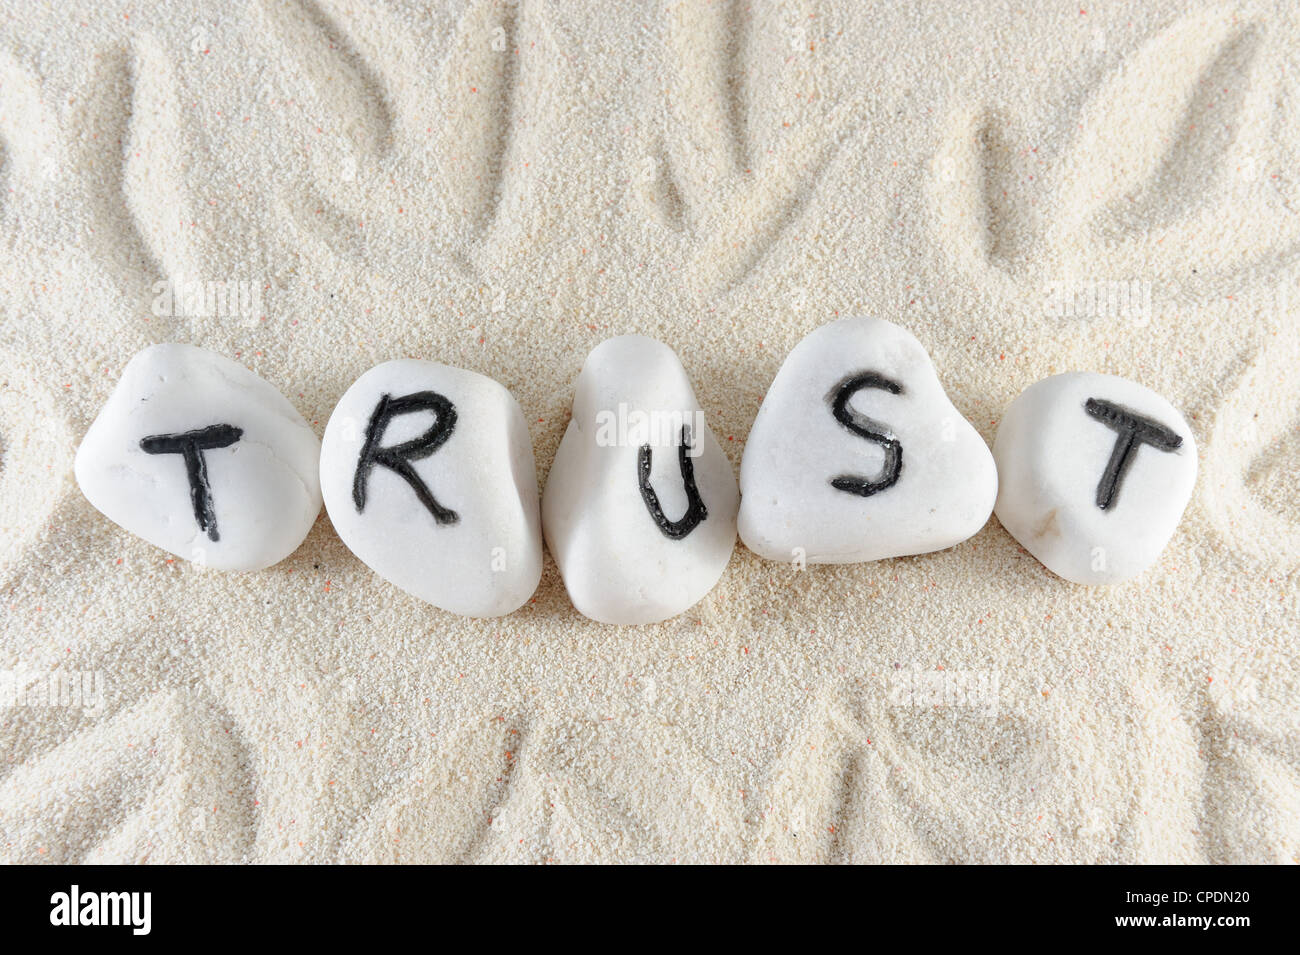 Trust word on group of stones on the sand - Stock Image